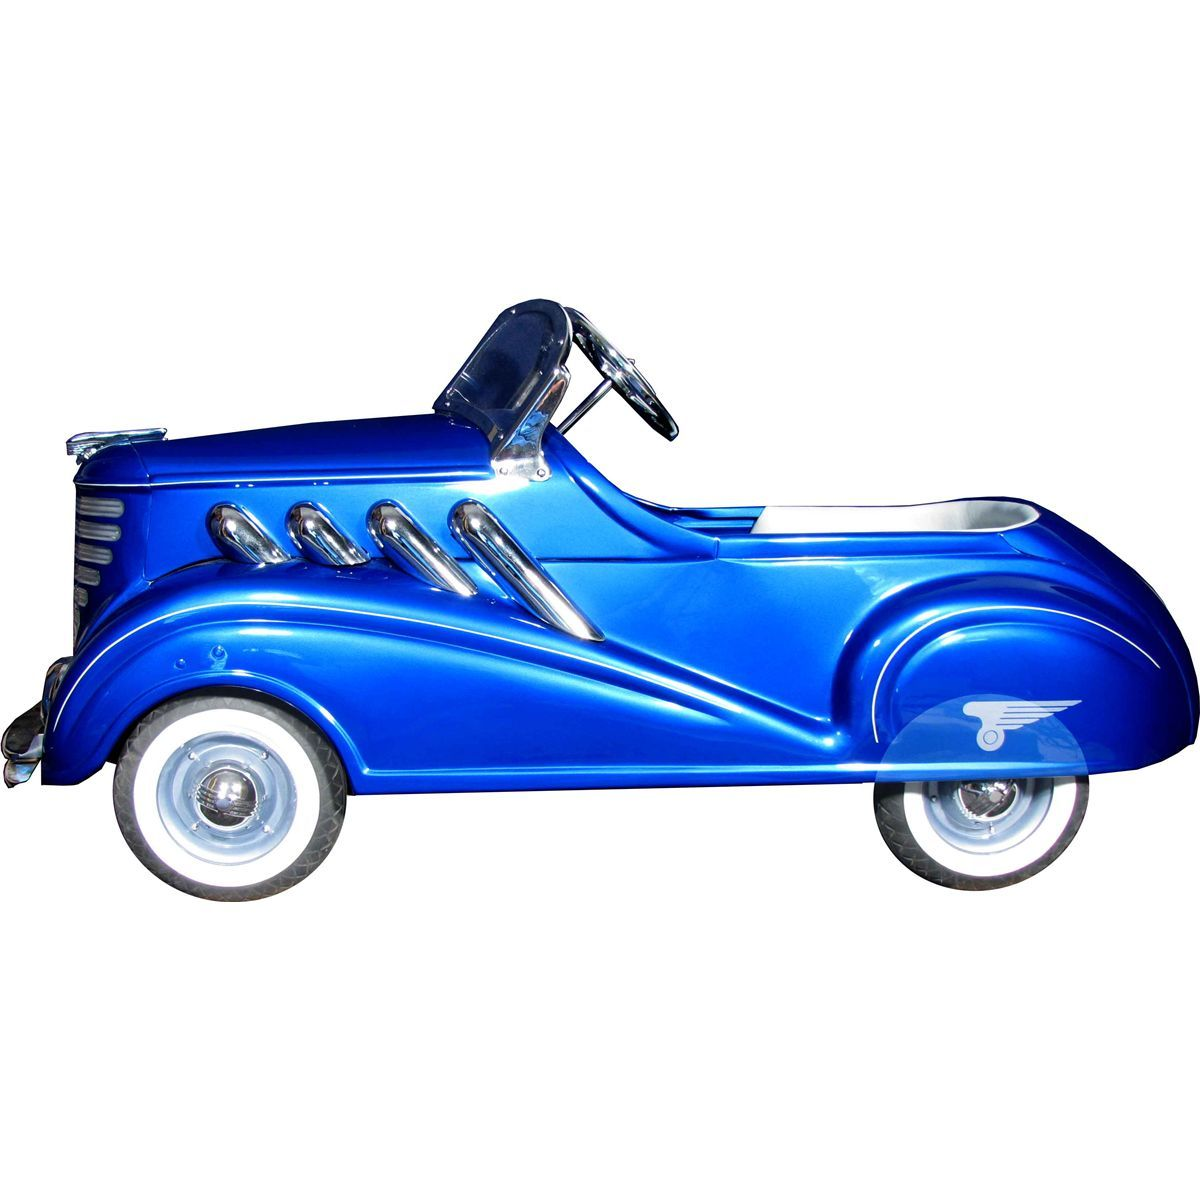 1937 Steelcraft Auburn Super Charger Deluxe Pedal Car Honolulu Blue And Silver Chrome Exhaust Pipes Windshield Bumper Vintage Pedal Cars Pedal Cars Pedal